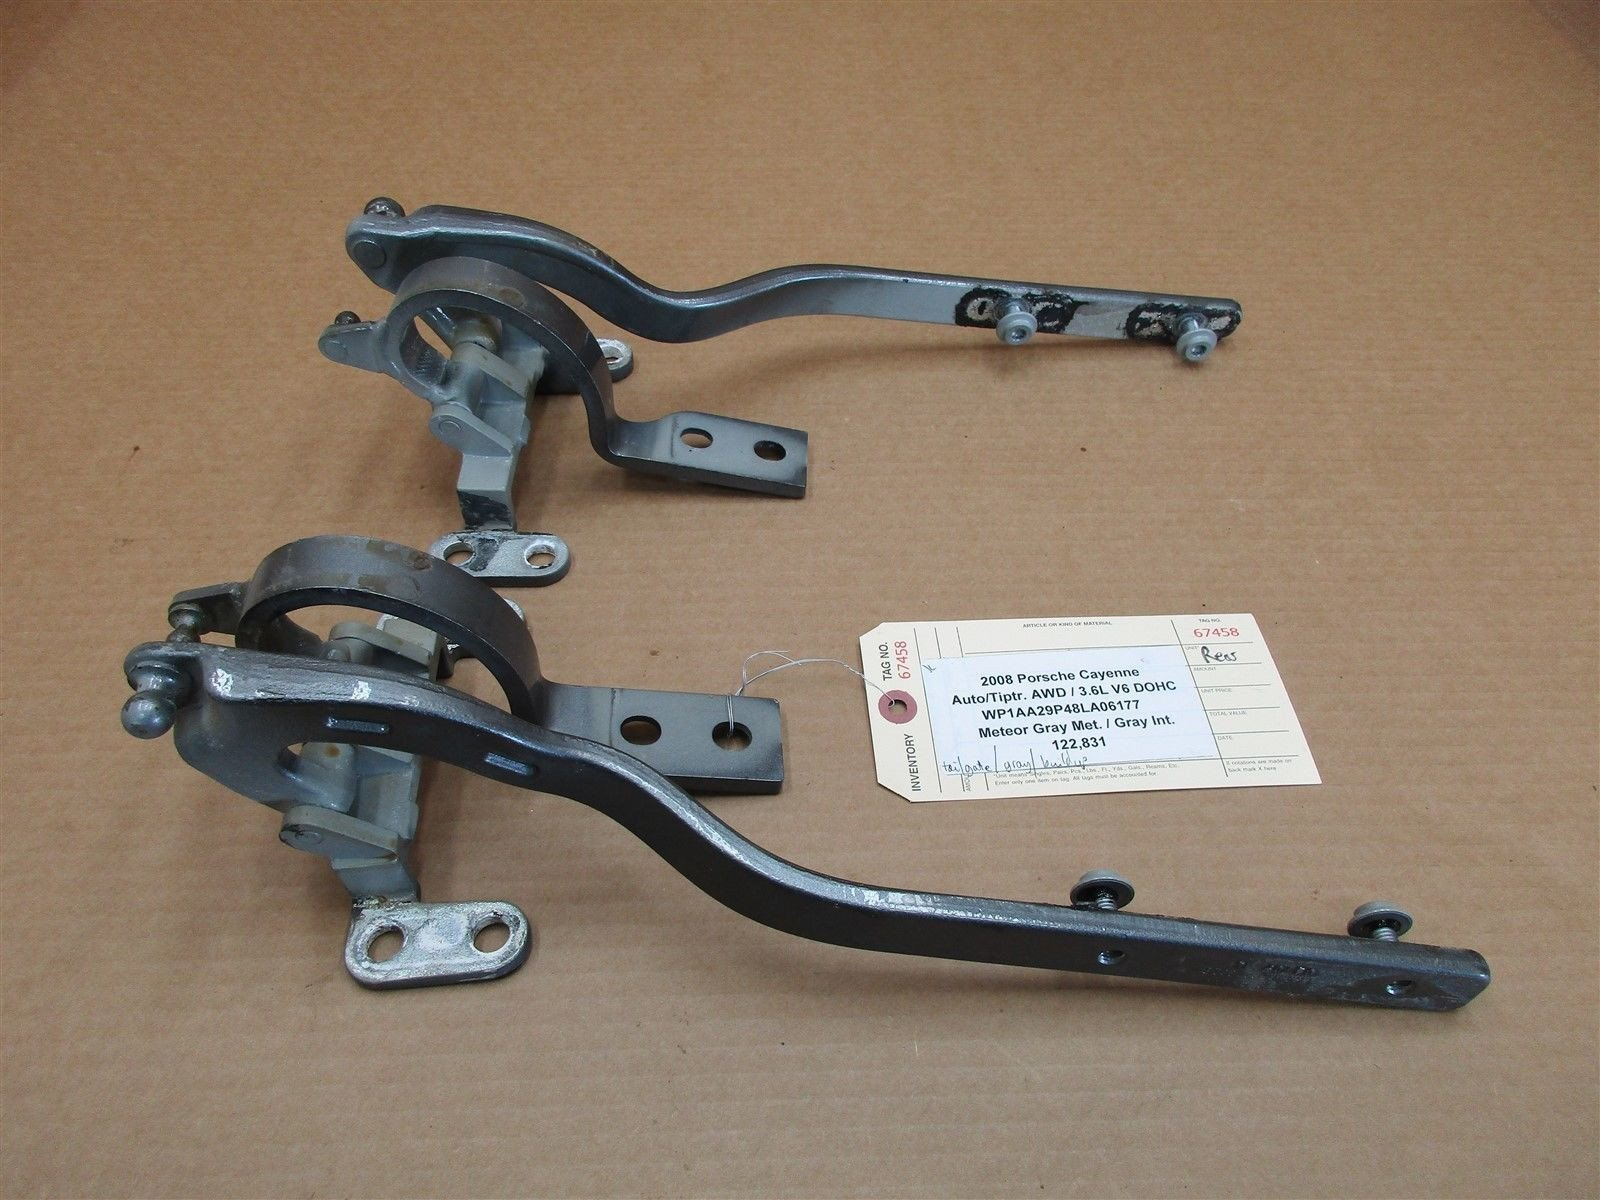 08 Cayenne AWD Porsche 957 2 REAR TAIL GATE HINGES 7L5827302B 7L5827301C 122,831